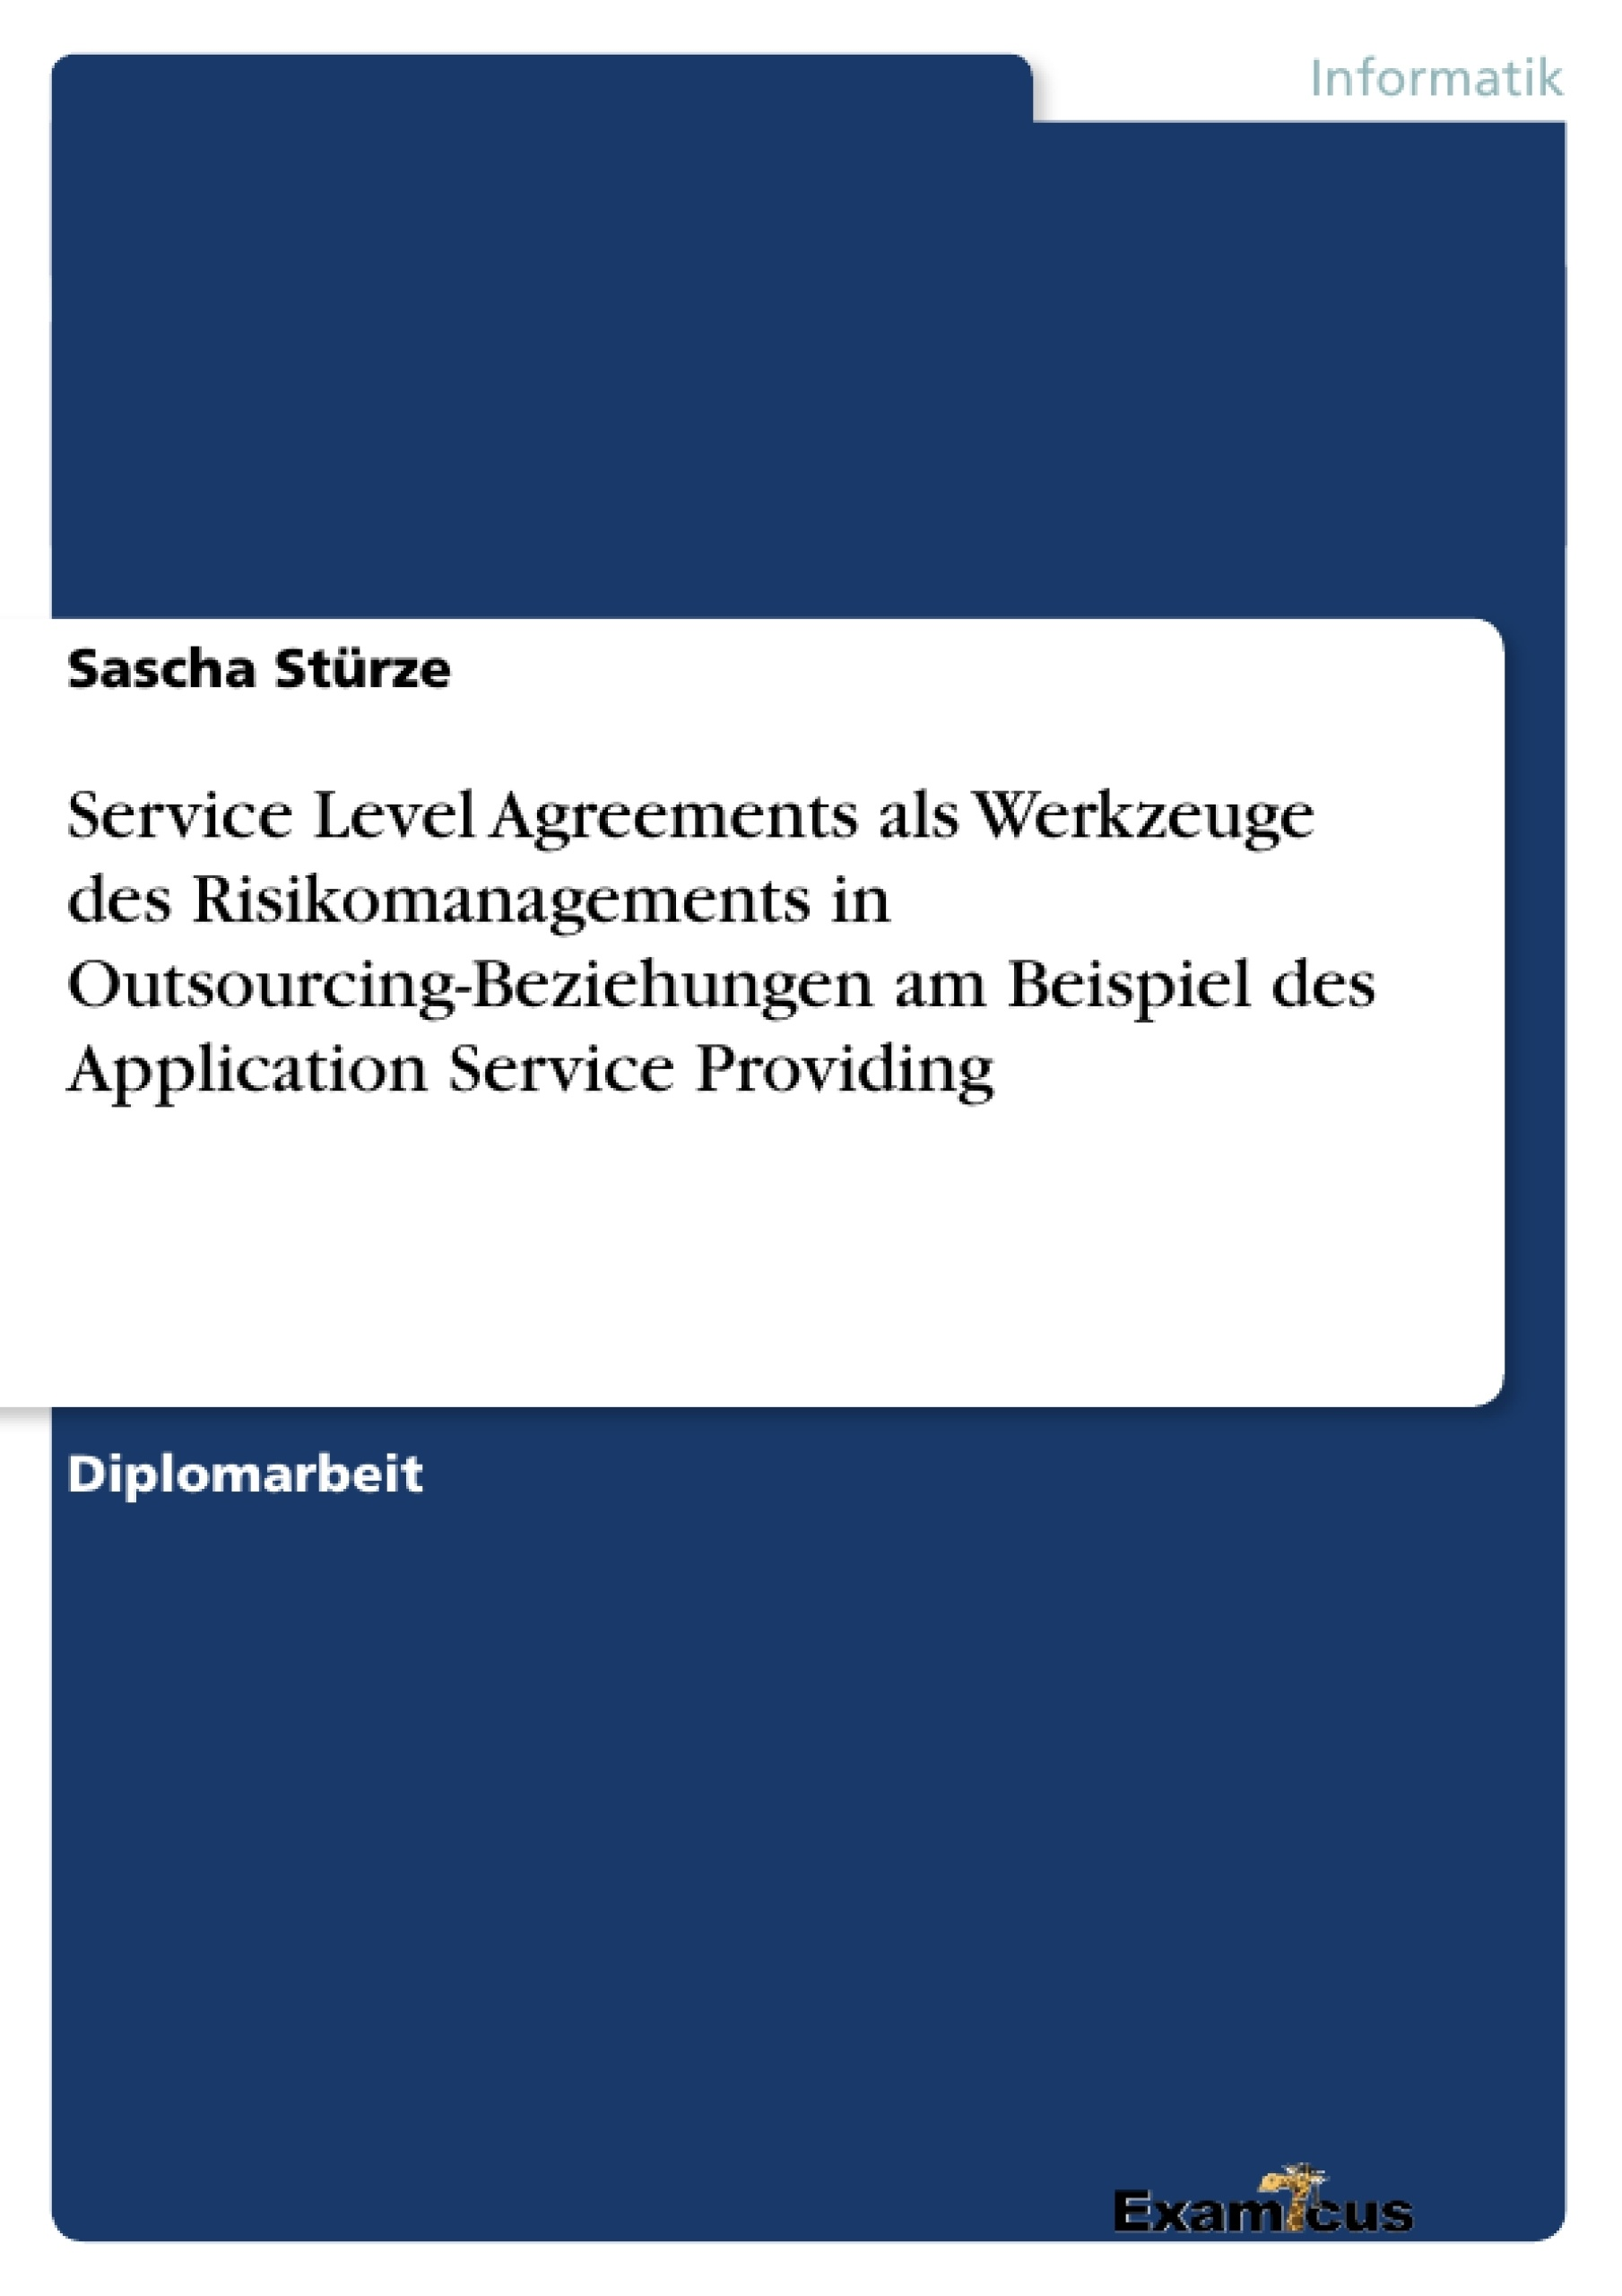 Titel: Service Level Agreements als Werkzeuge des Risikomanagements in Outsourcing-Beziehungen am Beispiel des Application Service Providing